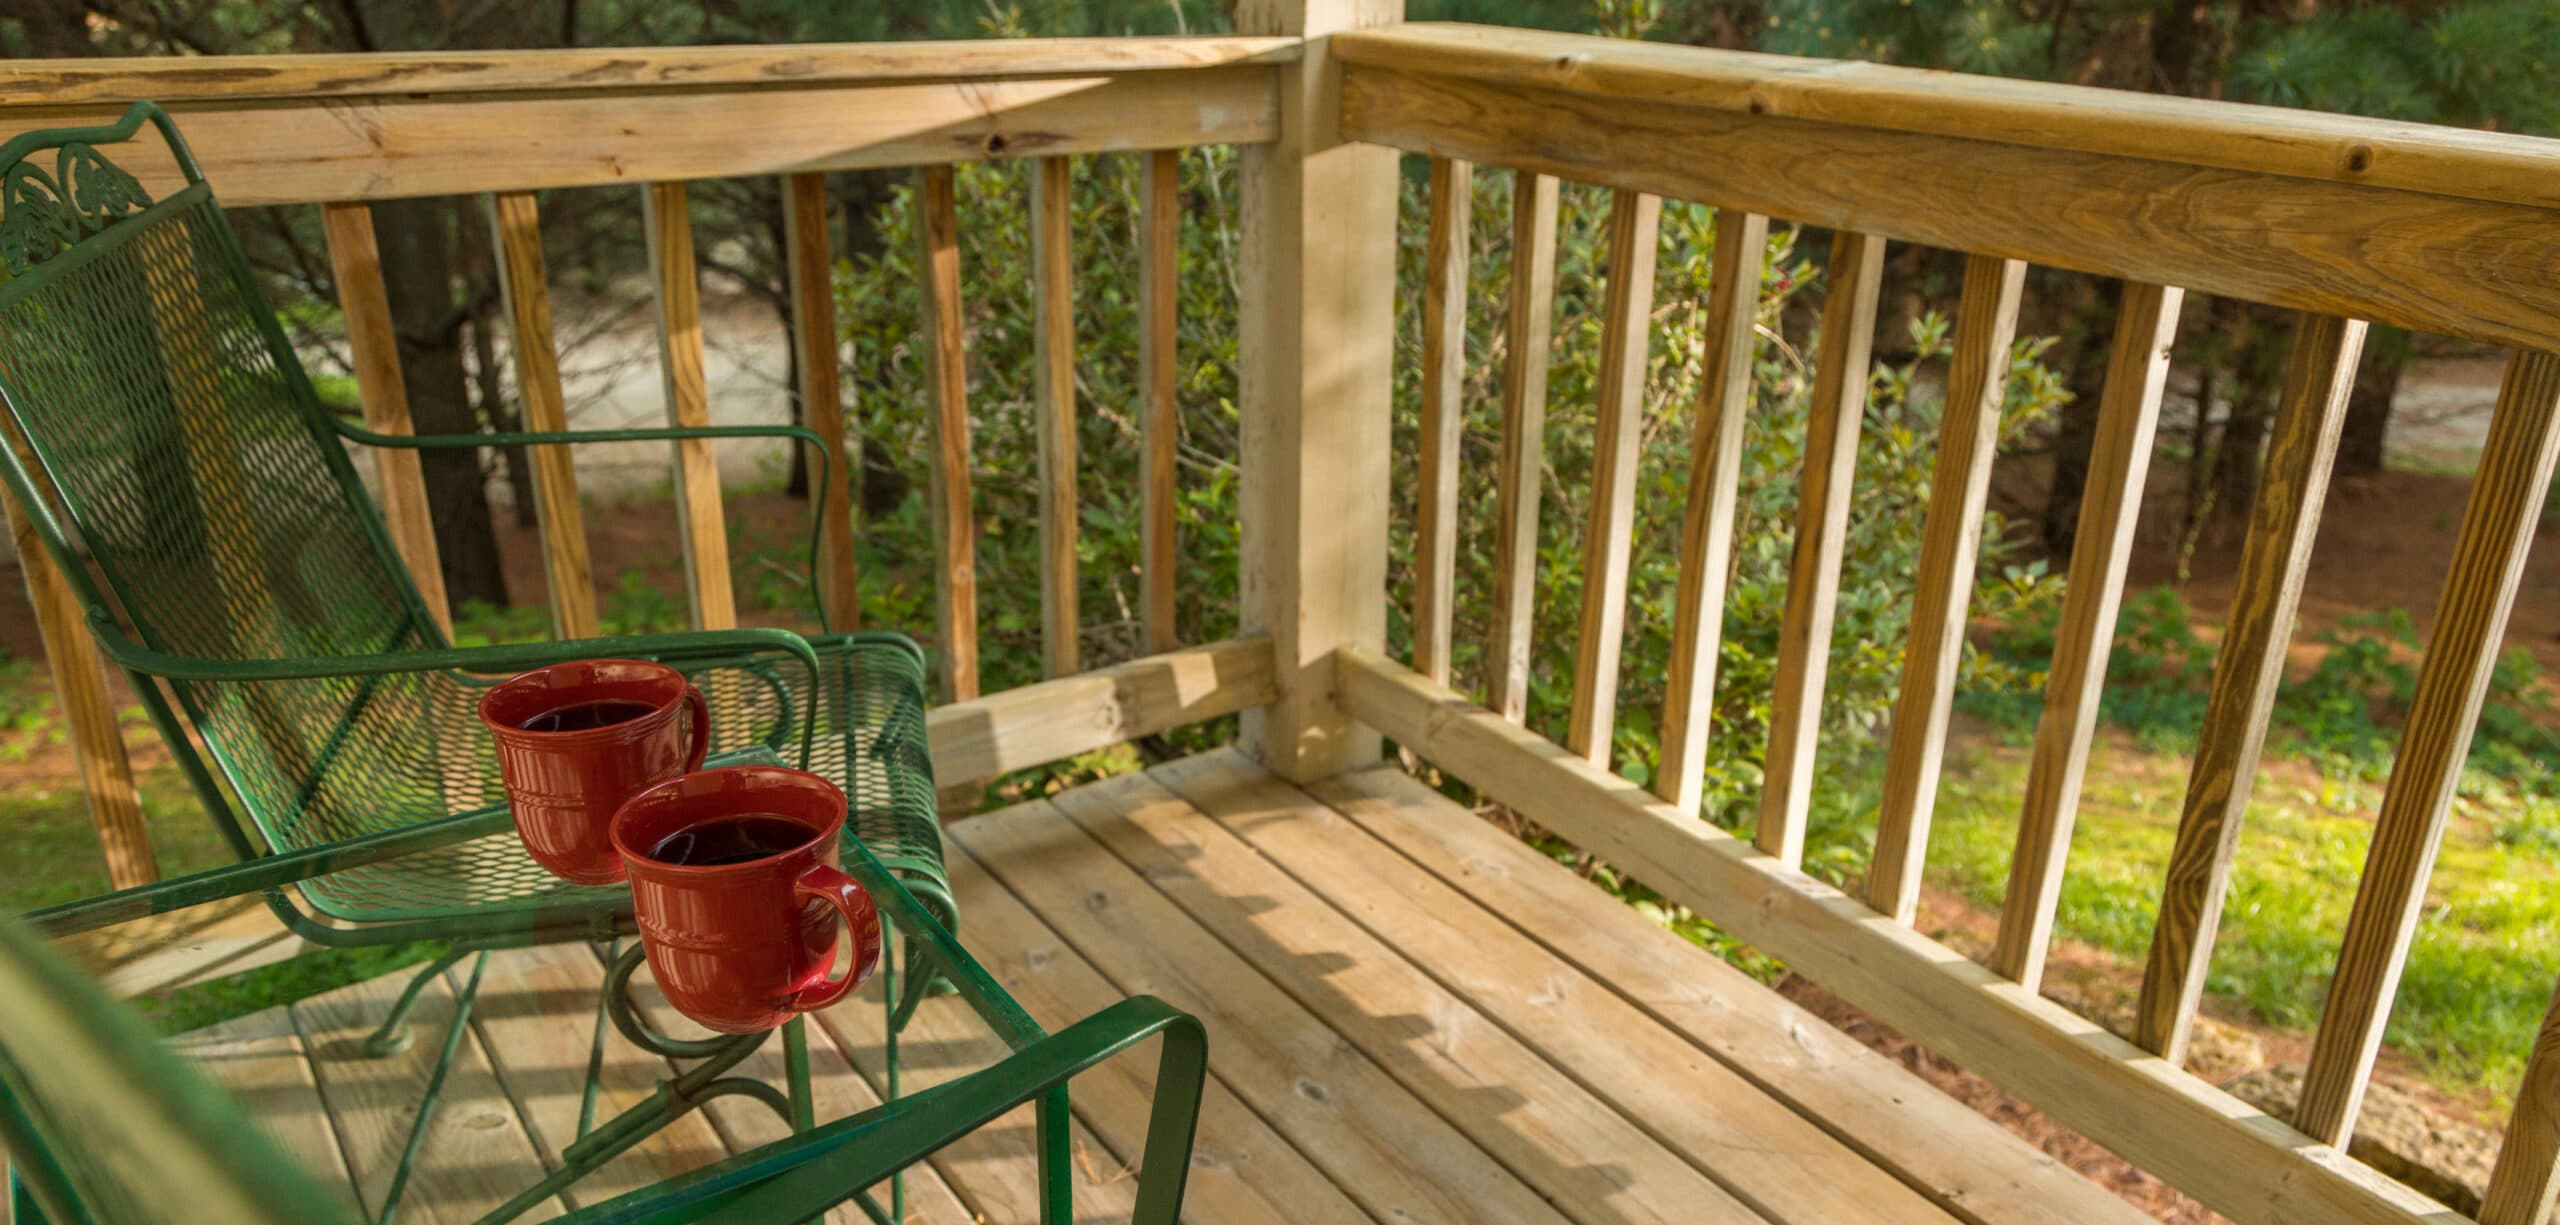 back deck with 2 green chairs and table with coffee cups